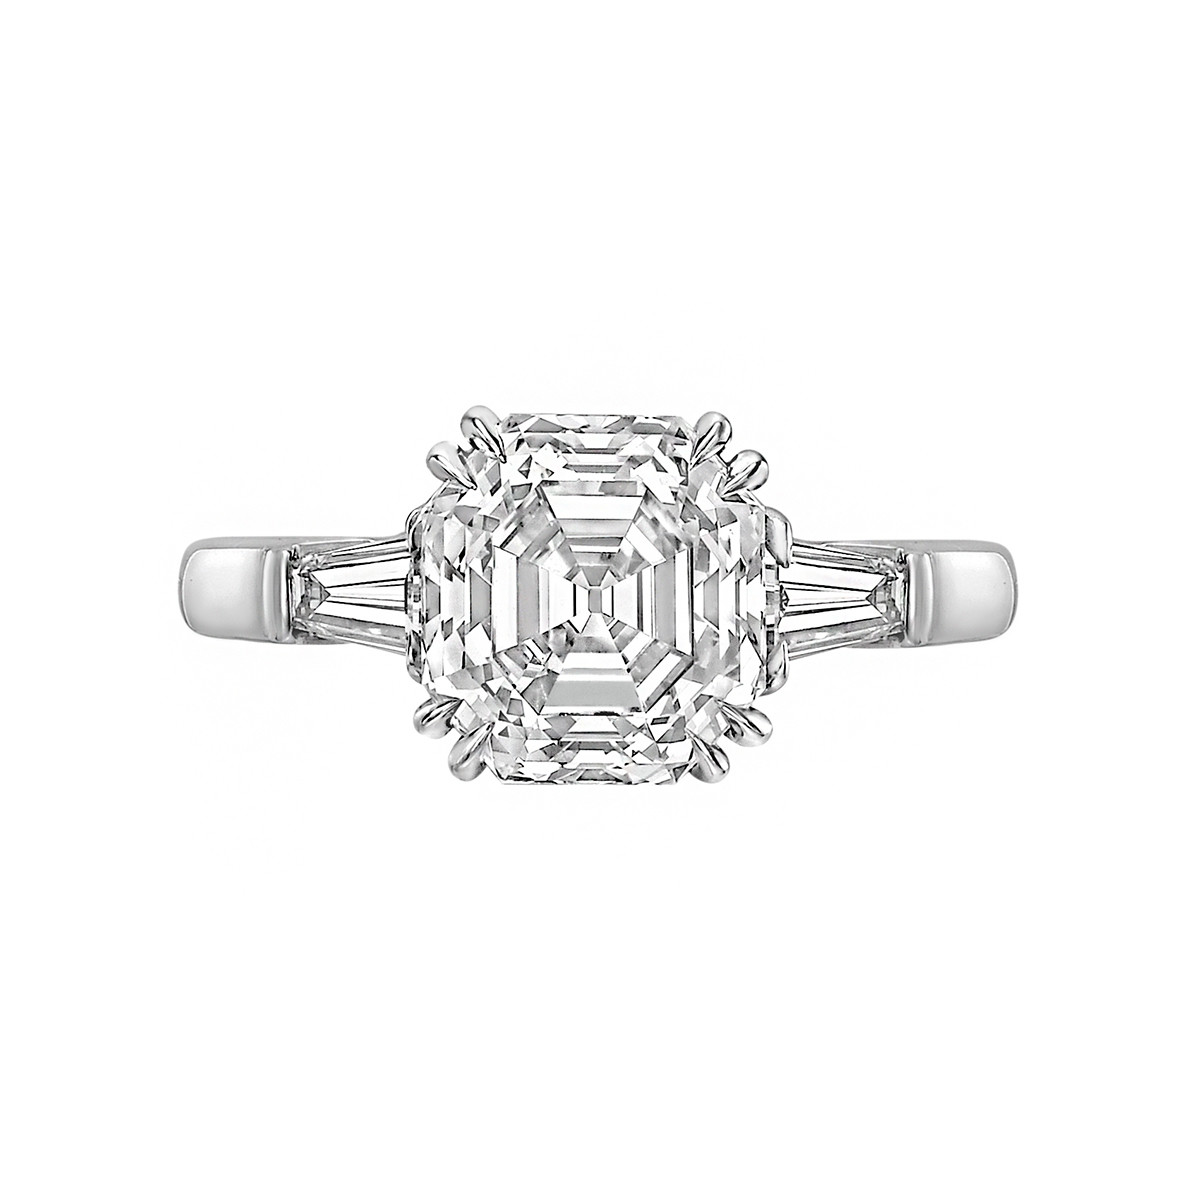 3.09ct Asscher-Cut Diamond Ring